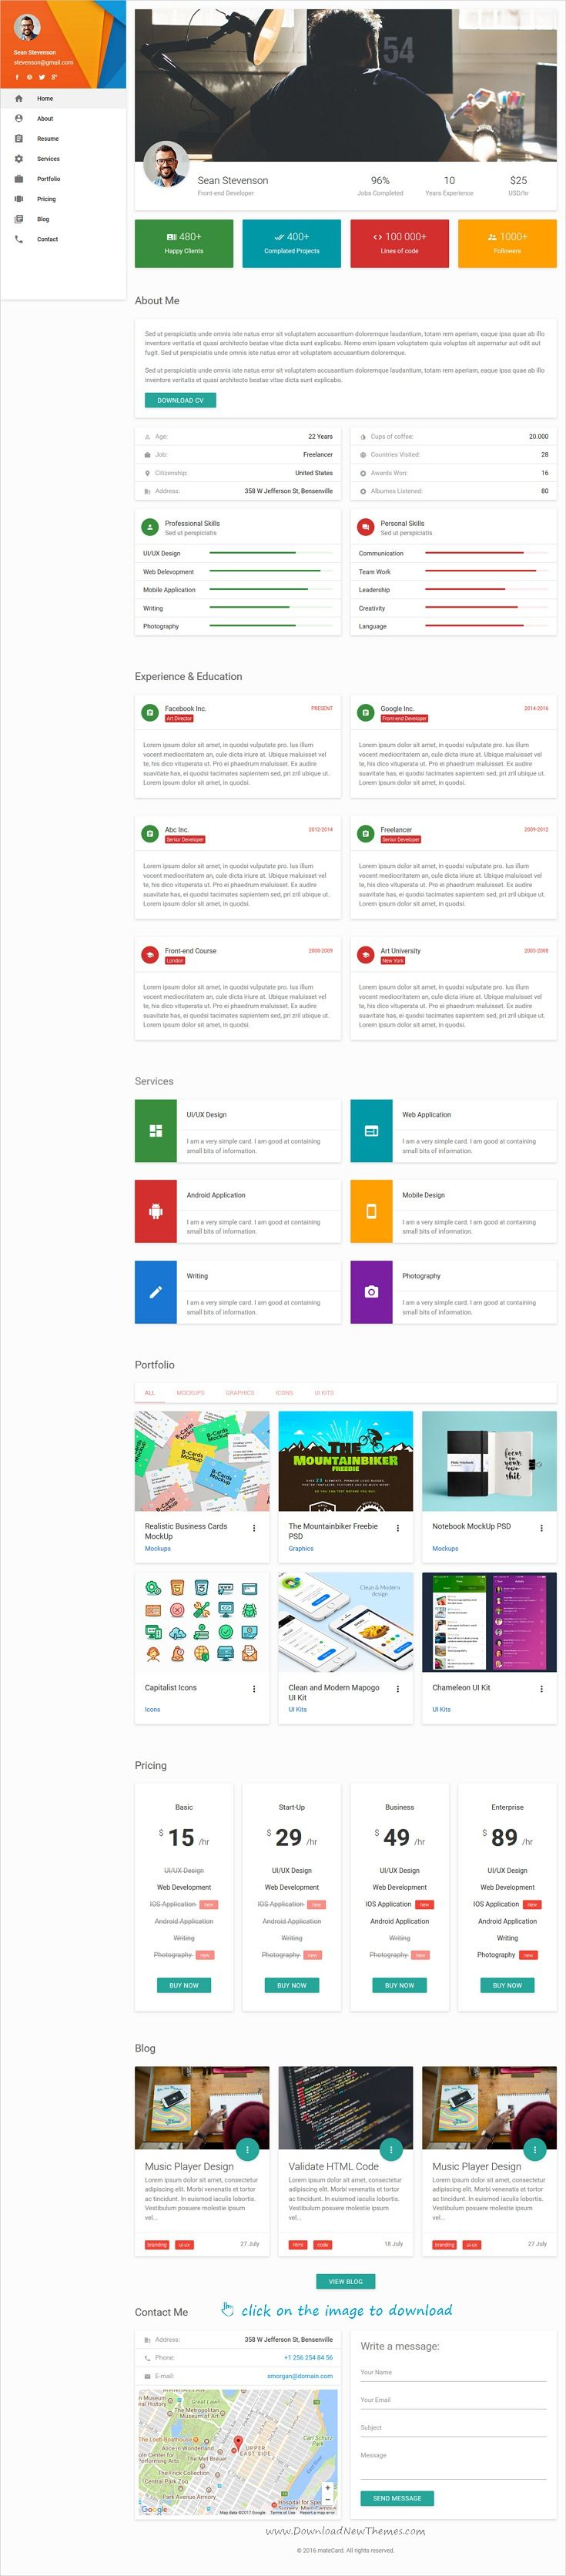 Resume Html Template Matecard  Materialize Vcardcvresume Html Template  Resume Cv